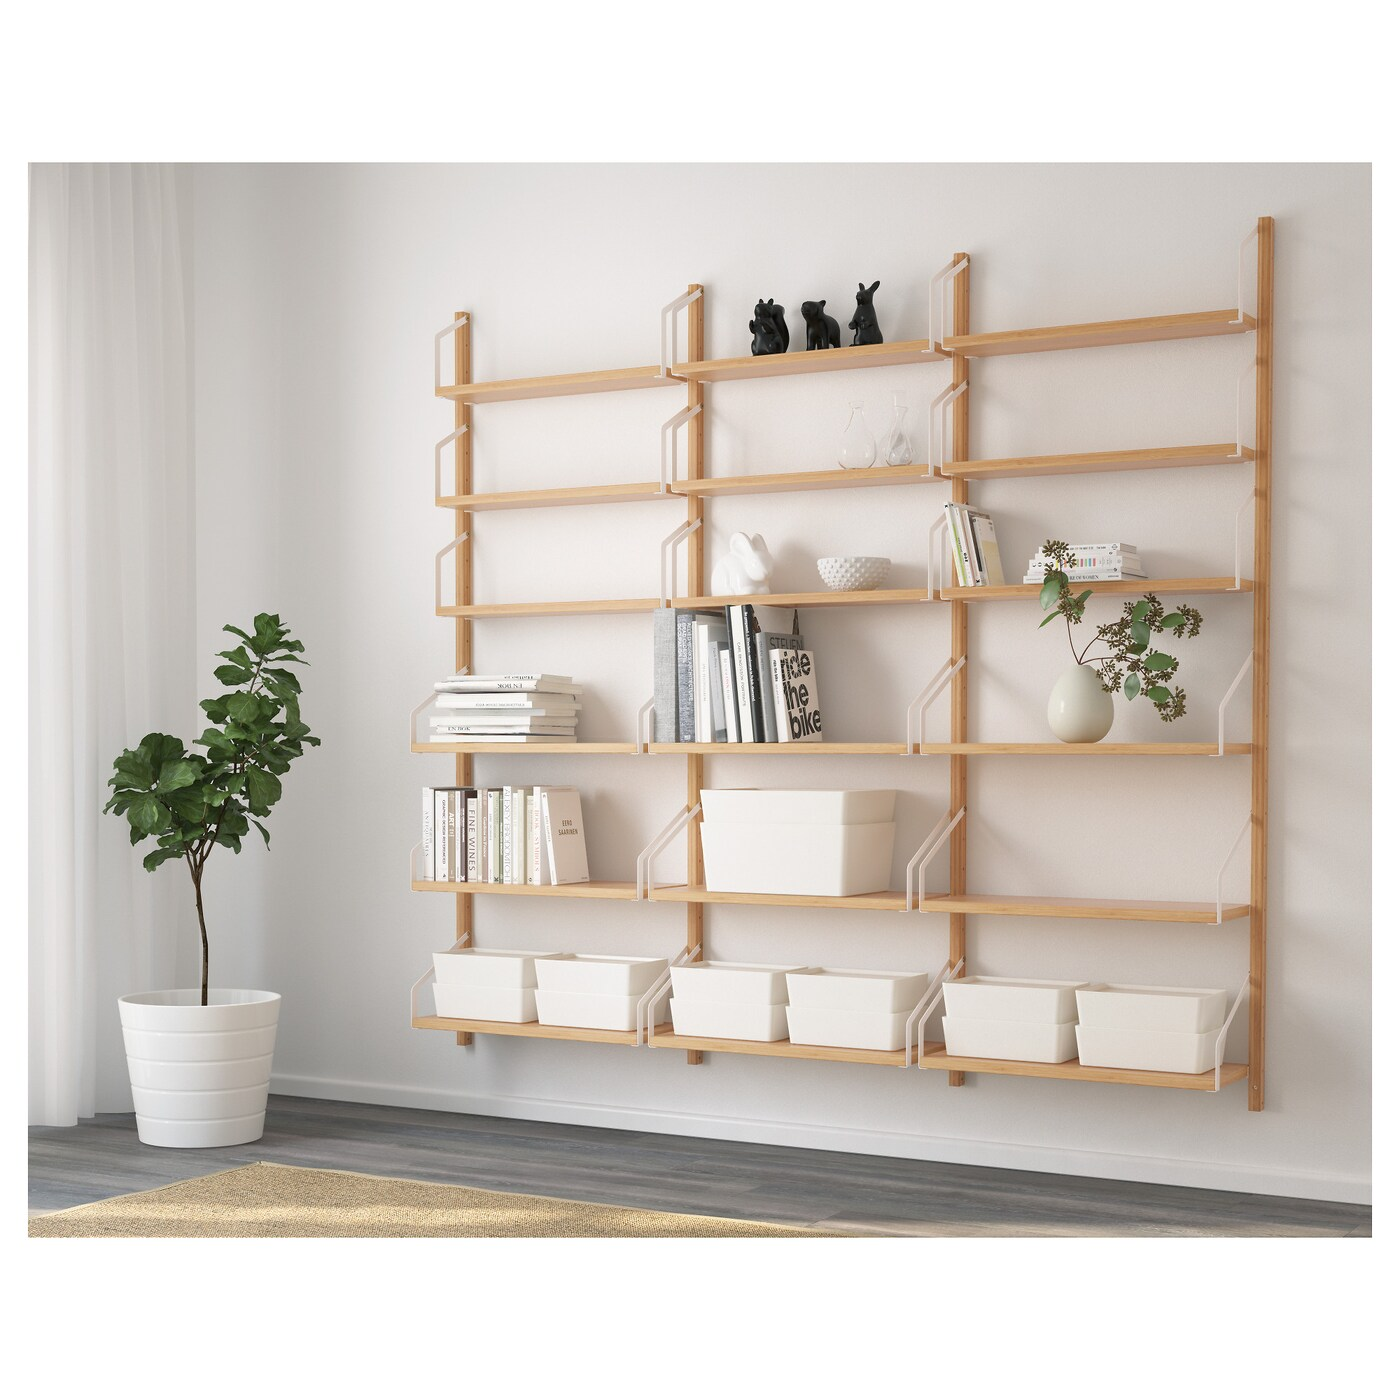 Svalnas Wall Mounted Shelf Combination Bamboo Ikea